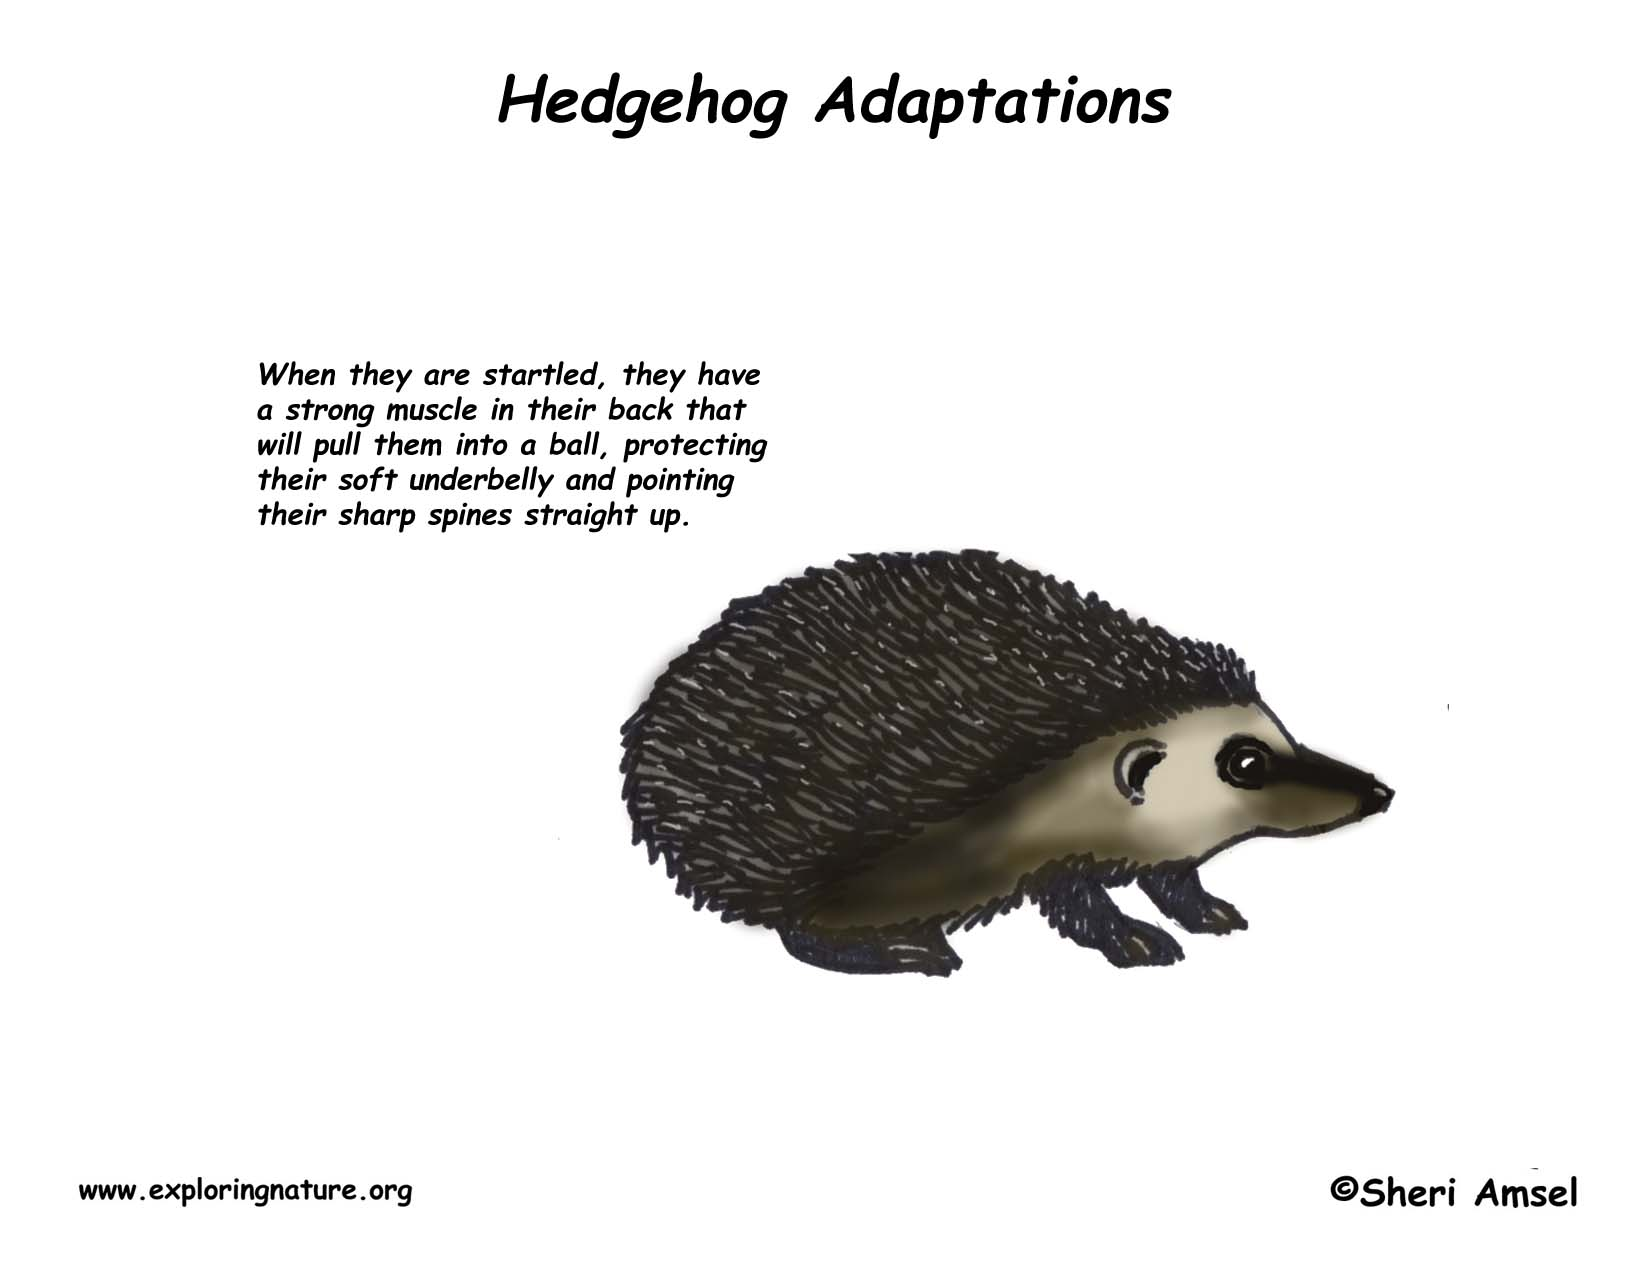 adaptations of the hedgehog